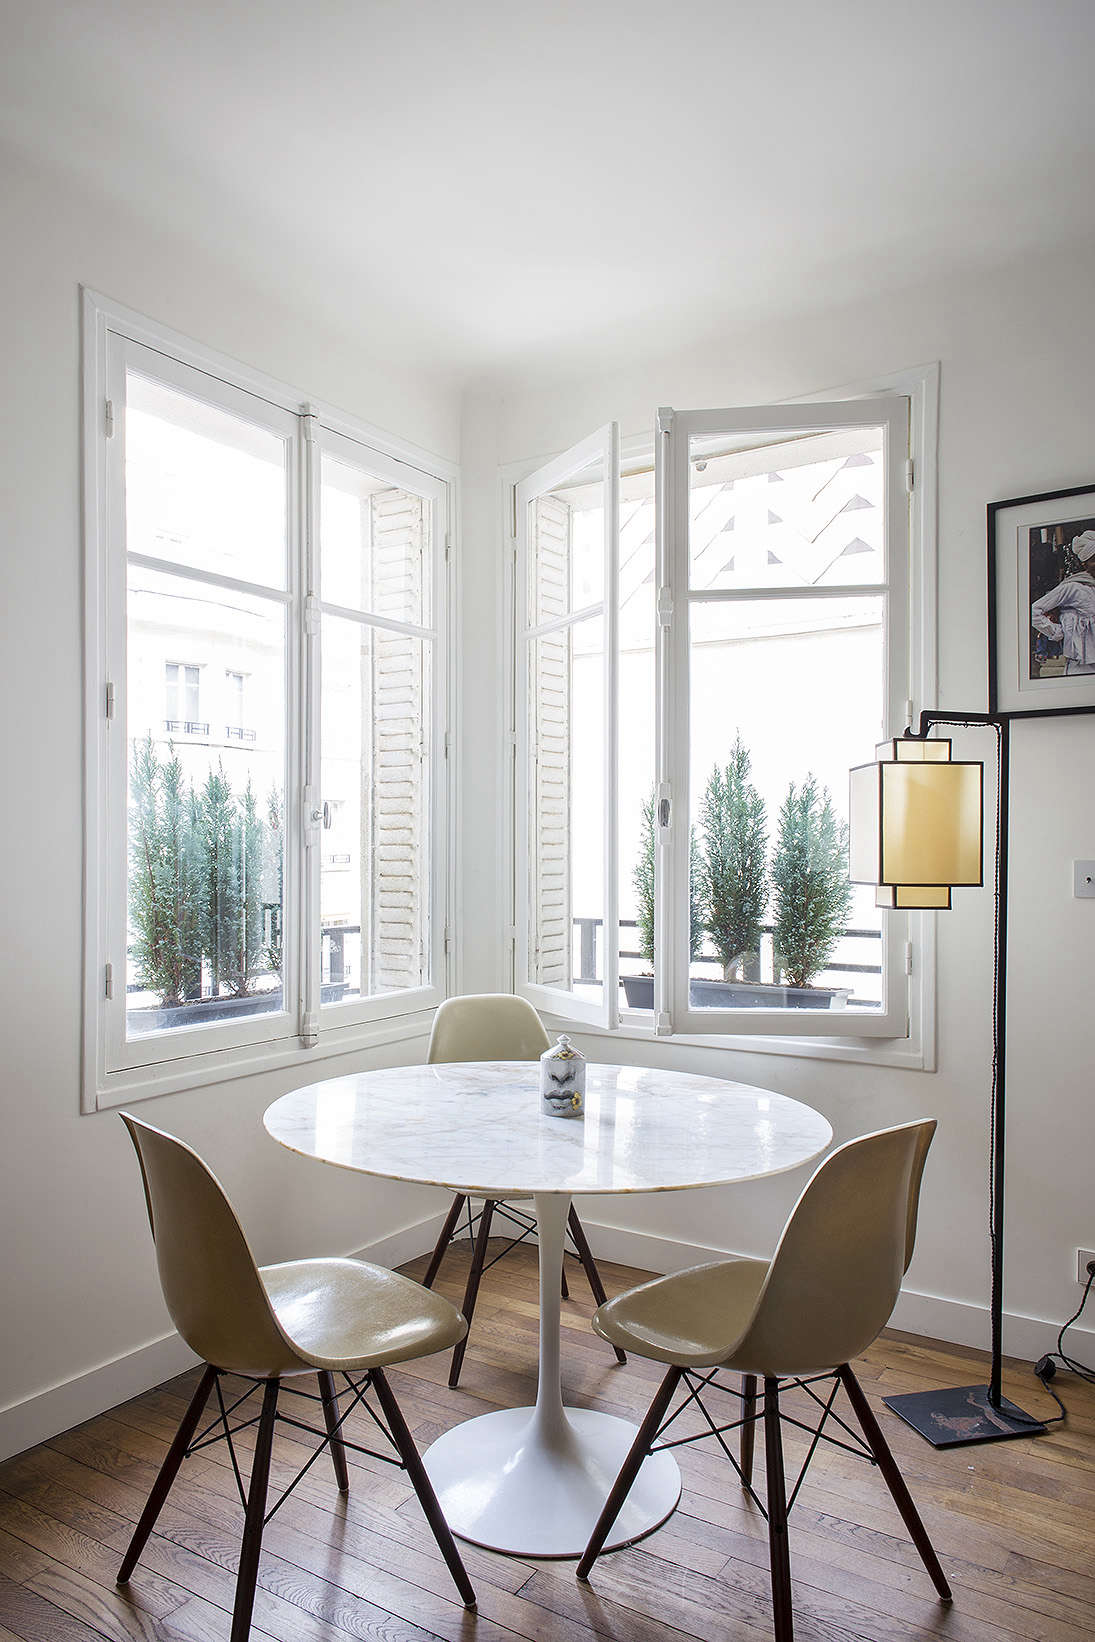 small apartment living room design modern rugs for south africa 9 space ideas to steal from a tiny paris eames side chairs with see through bases that reference the eiffel tower keep corner